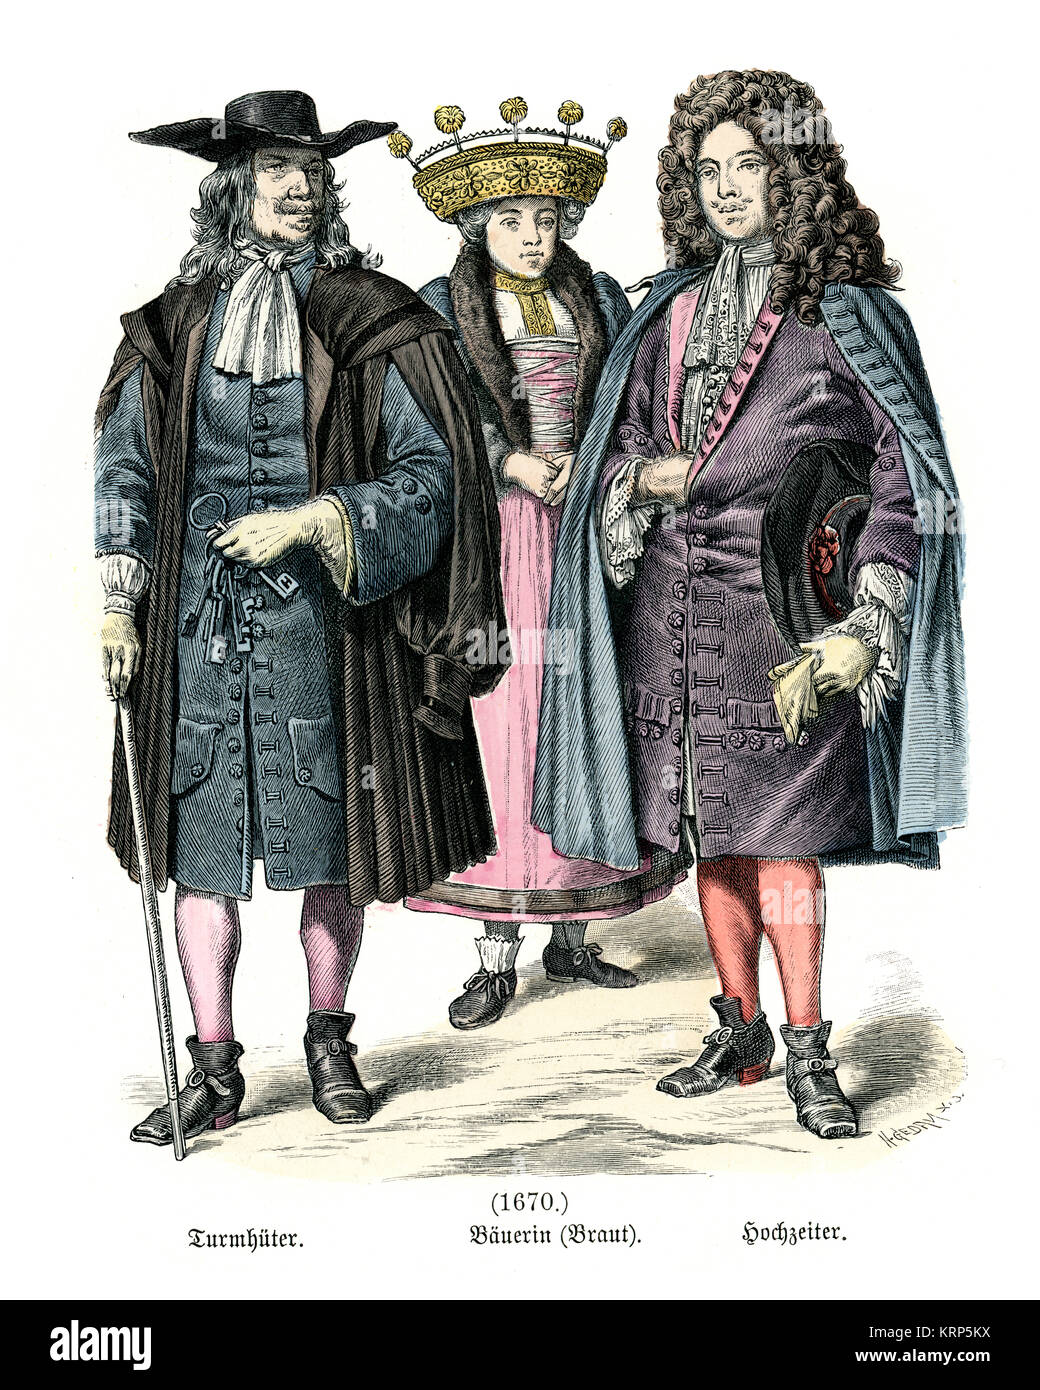 French fashion 17th century france Reign Louis XIV. French fashion history. Costume History